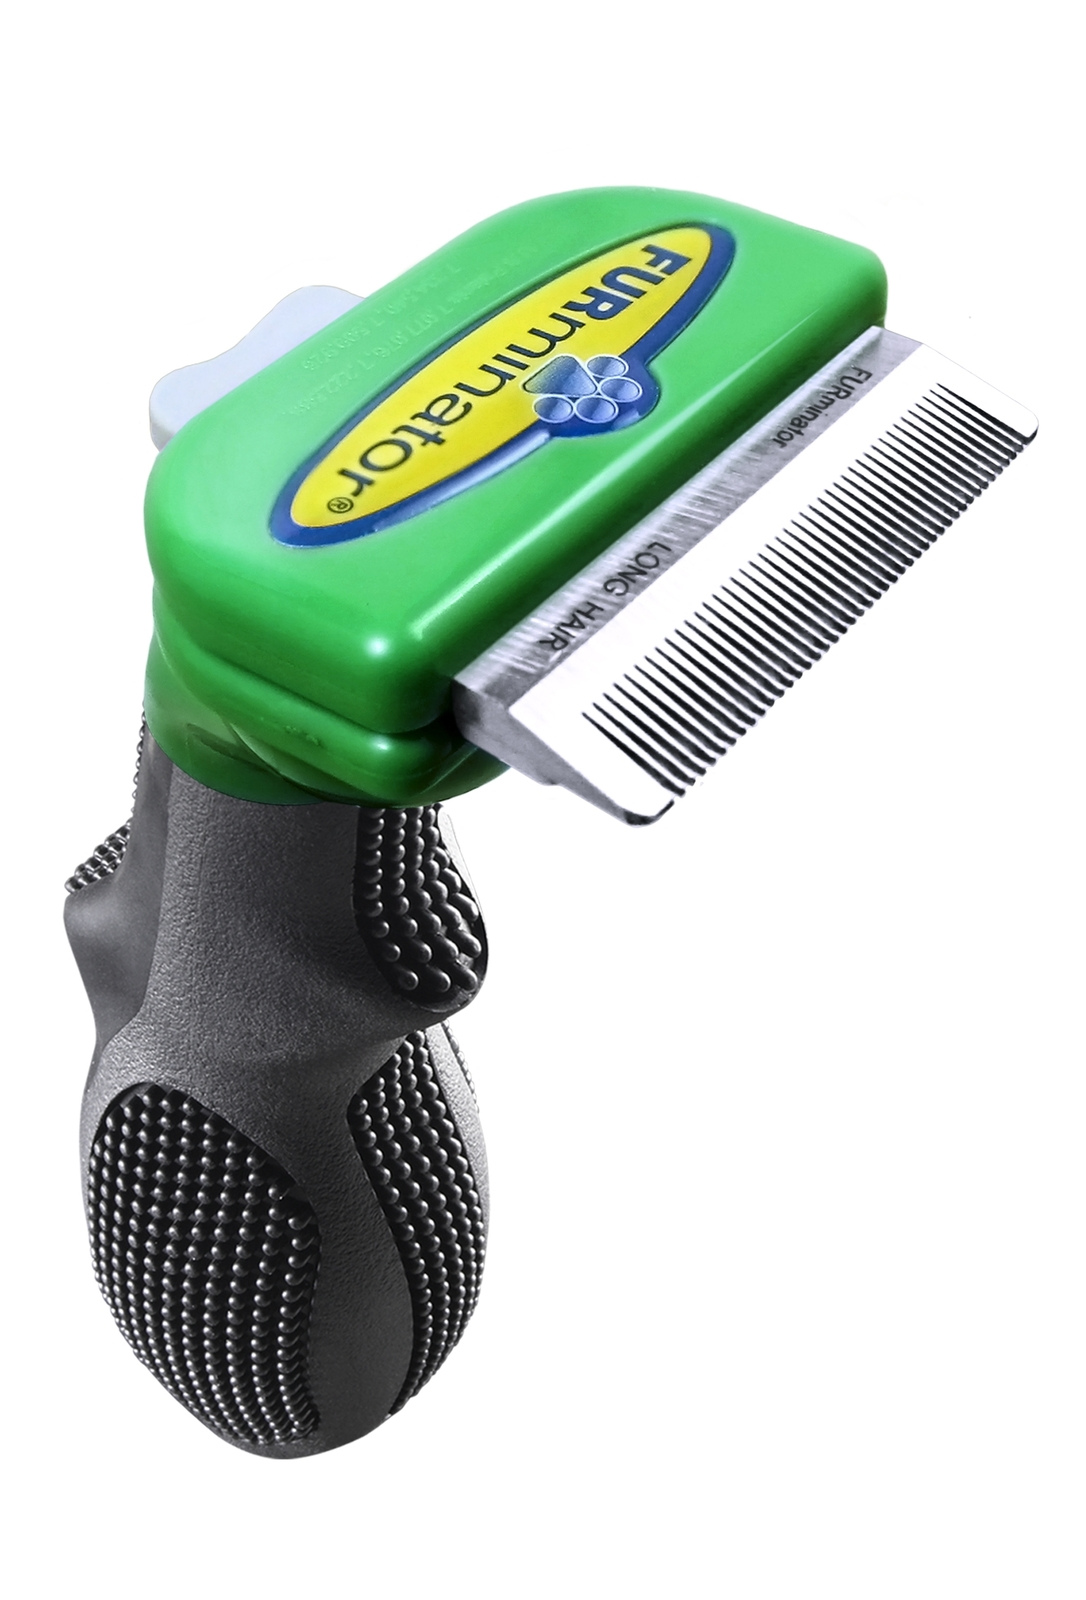 furminator deshedding tool for dogs reviews